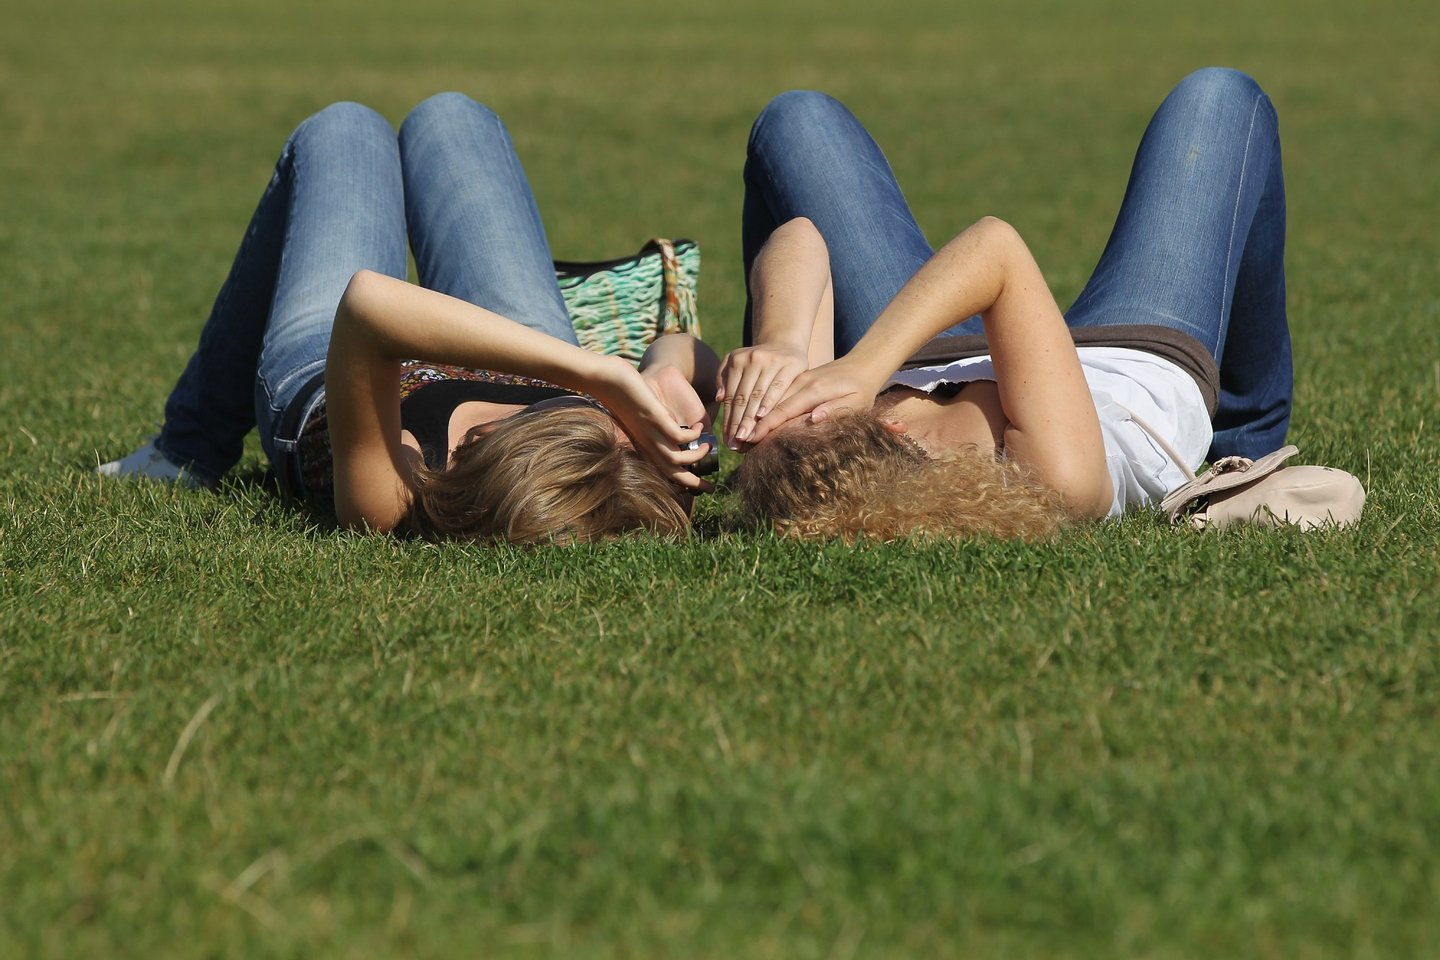 BERLIN, GERMANY - AUGUST 22: Two young women relax ona sunny day on grass near the Reichstag on August 22, 2011 in Berlin, Germany. Germany, which has thus far endured a summer marked by rain and cold, is seeing sunny skies and warm temperatures this week. (Photo by Sean Gallup/Getty Images)